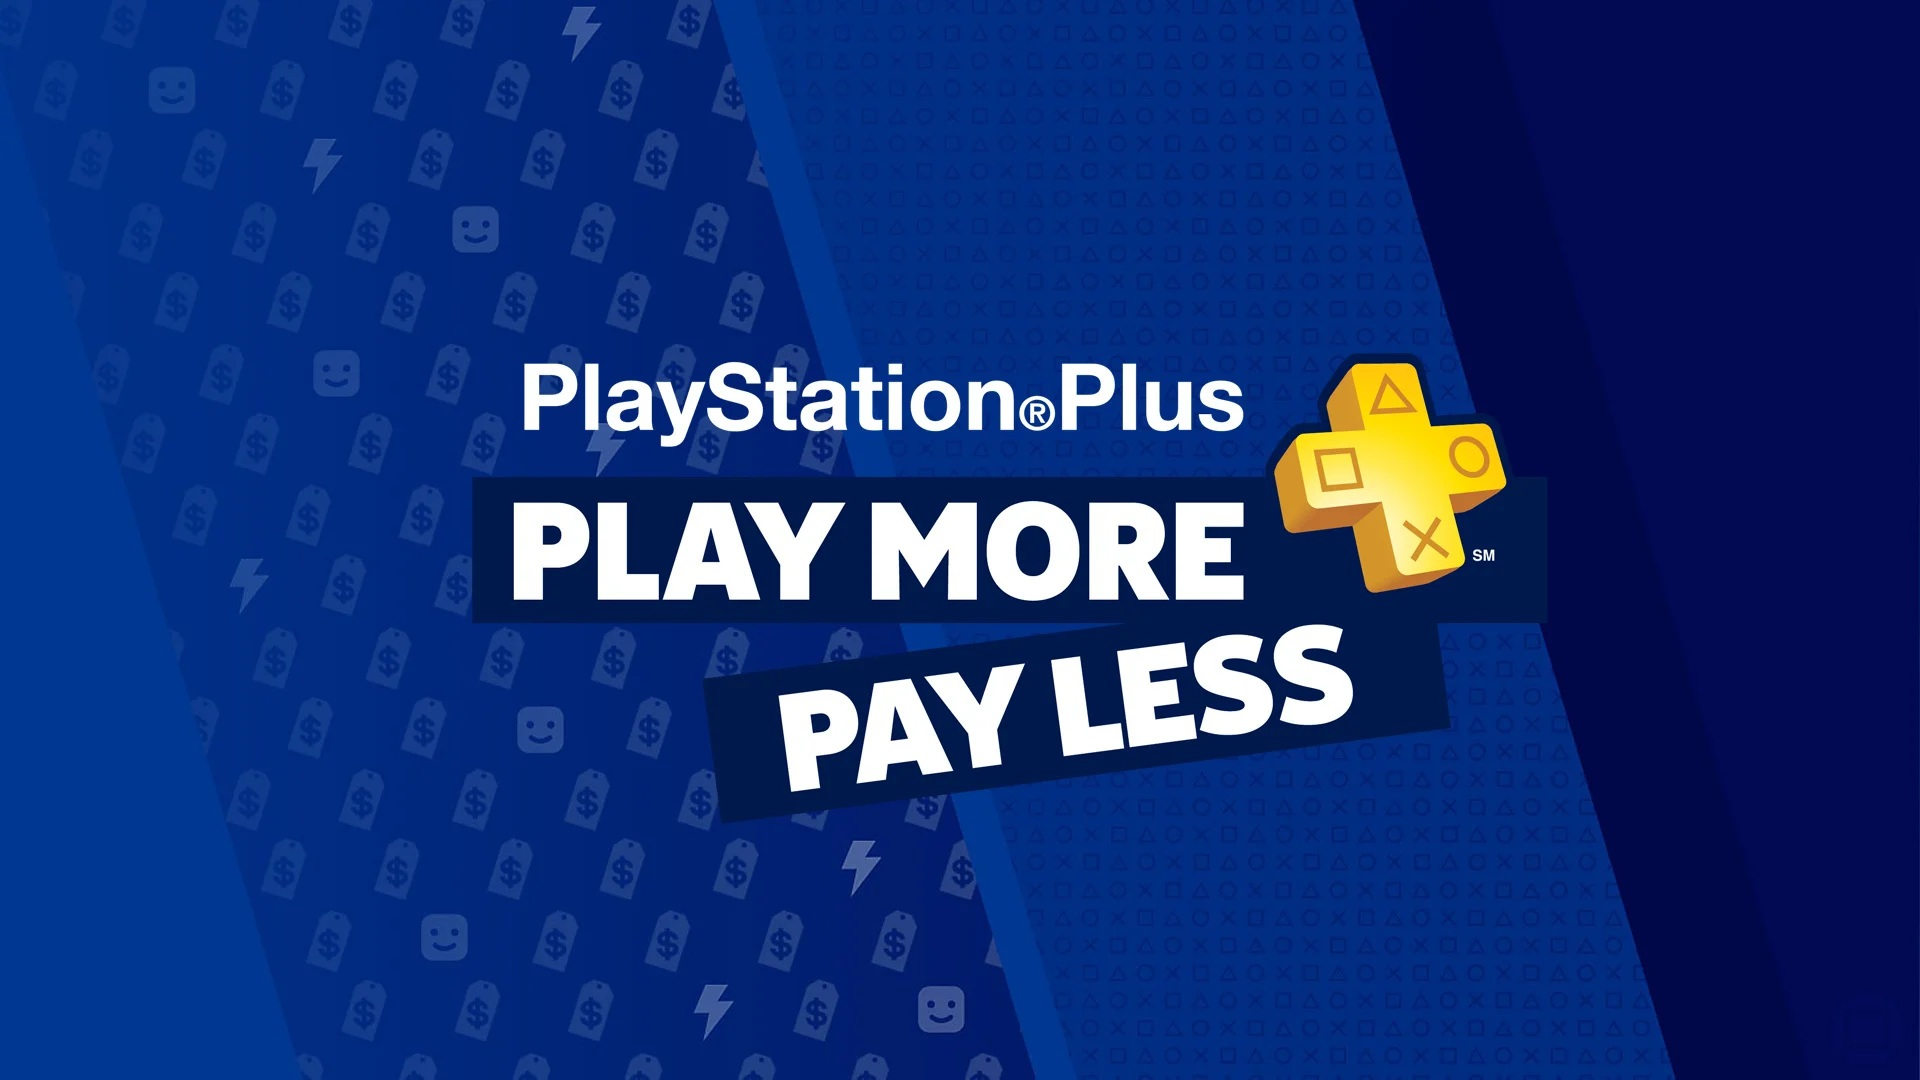 Presently, all free games are accessible on the Play Store, PlayStation Plus, and Games With Gold.